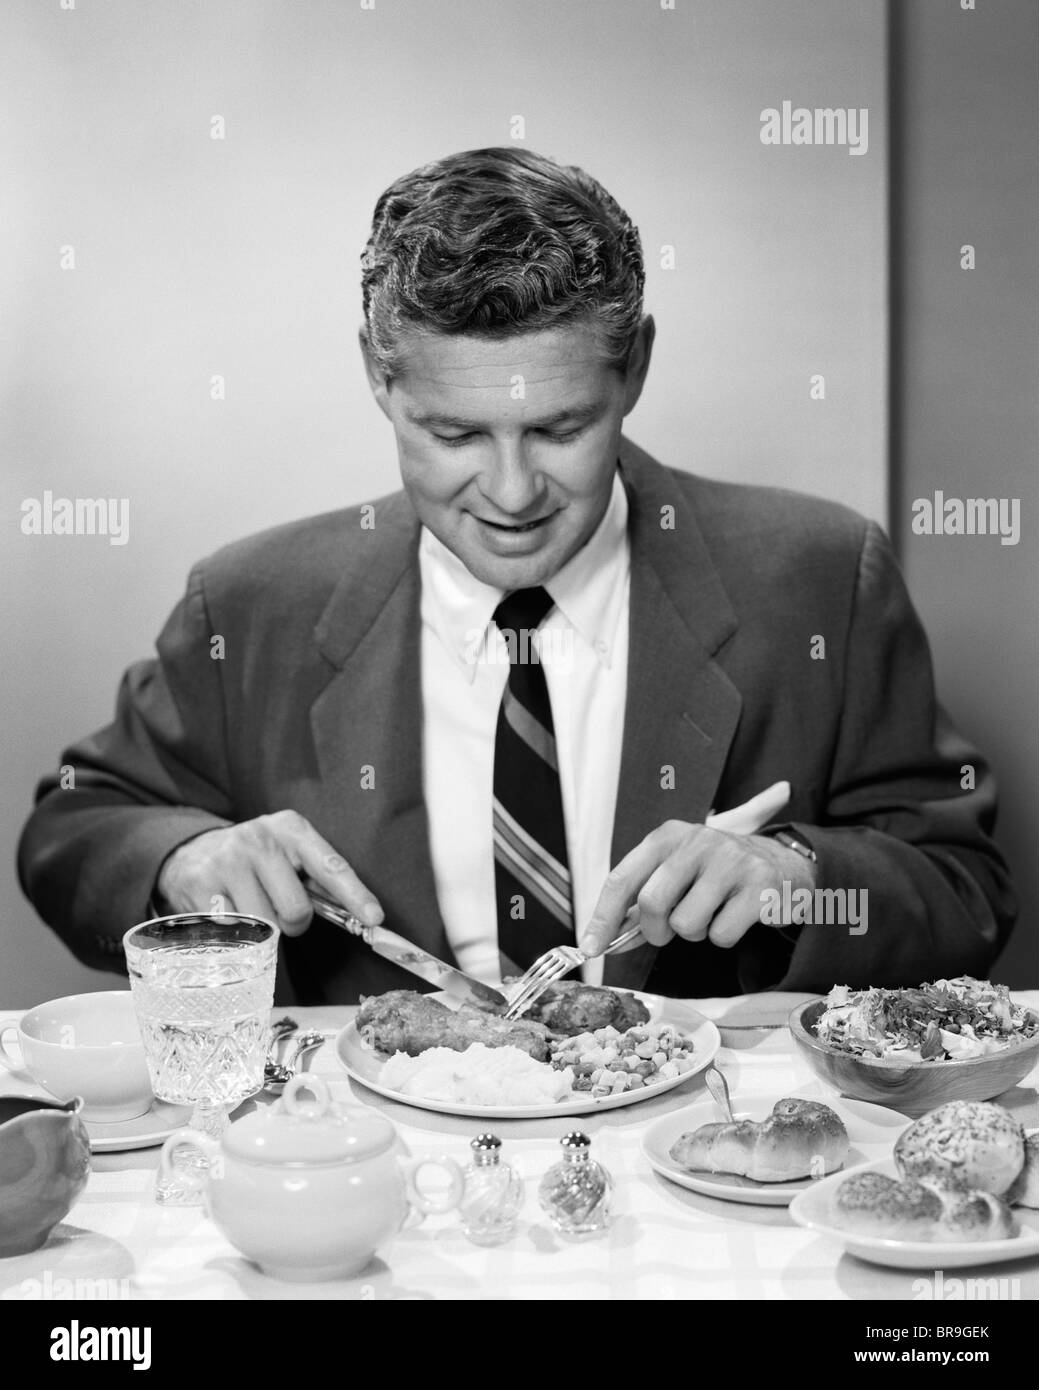 1950s SMILING MAN IN SUIT AND TIE SITTING AT TABLE HOLDING KNIFE AND FORK EATING DINNER - Stock Image